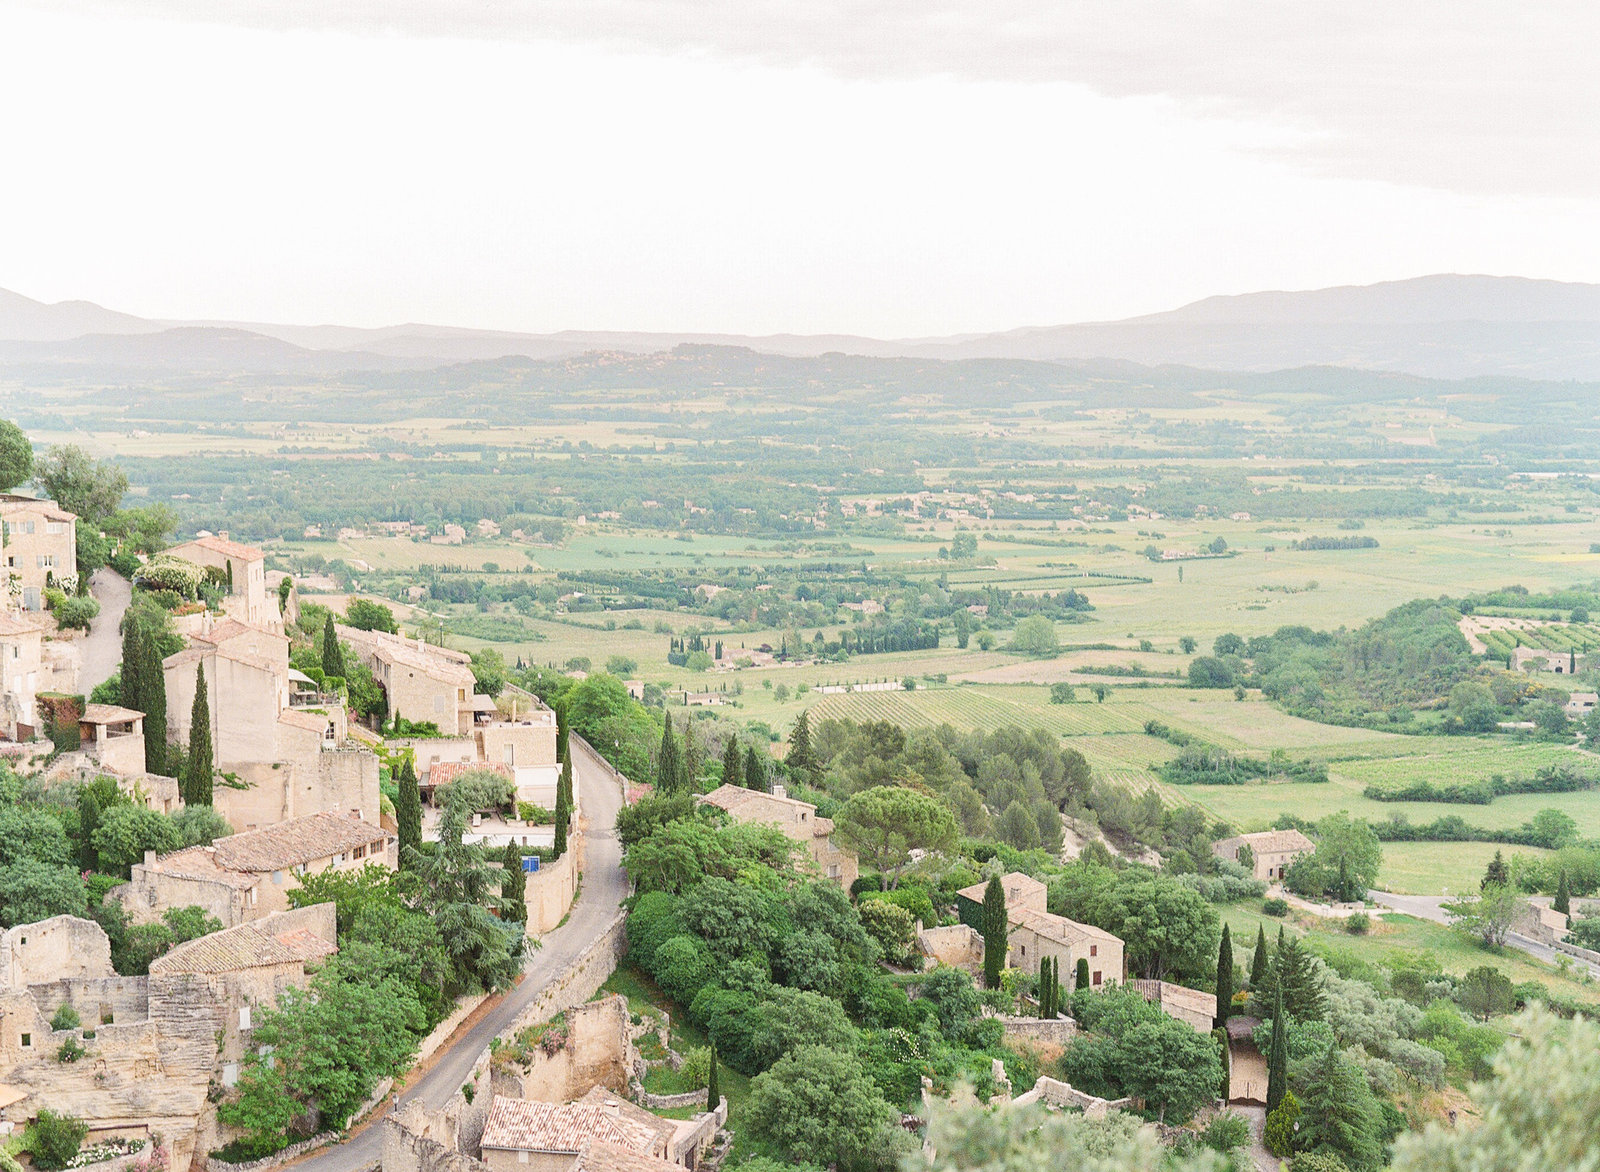 Gordes. Gordes sunset. Provence sunset. Luberon, France. Paris wedding photographer. Paris wedding photography. France wedding photographer. Paris destination wedding.